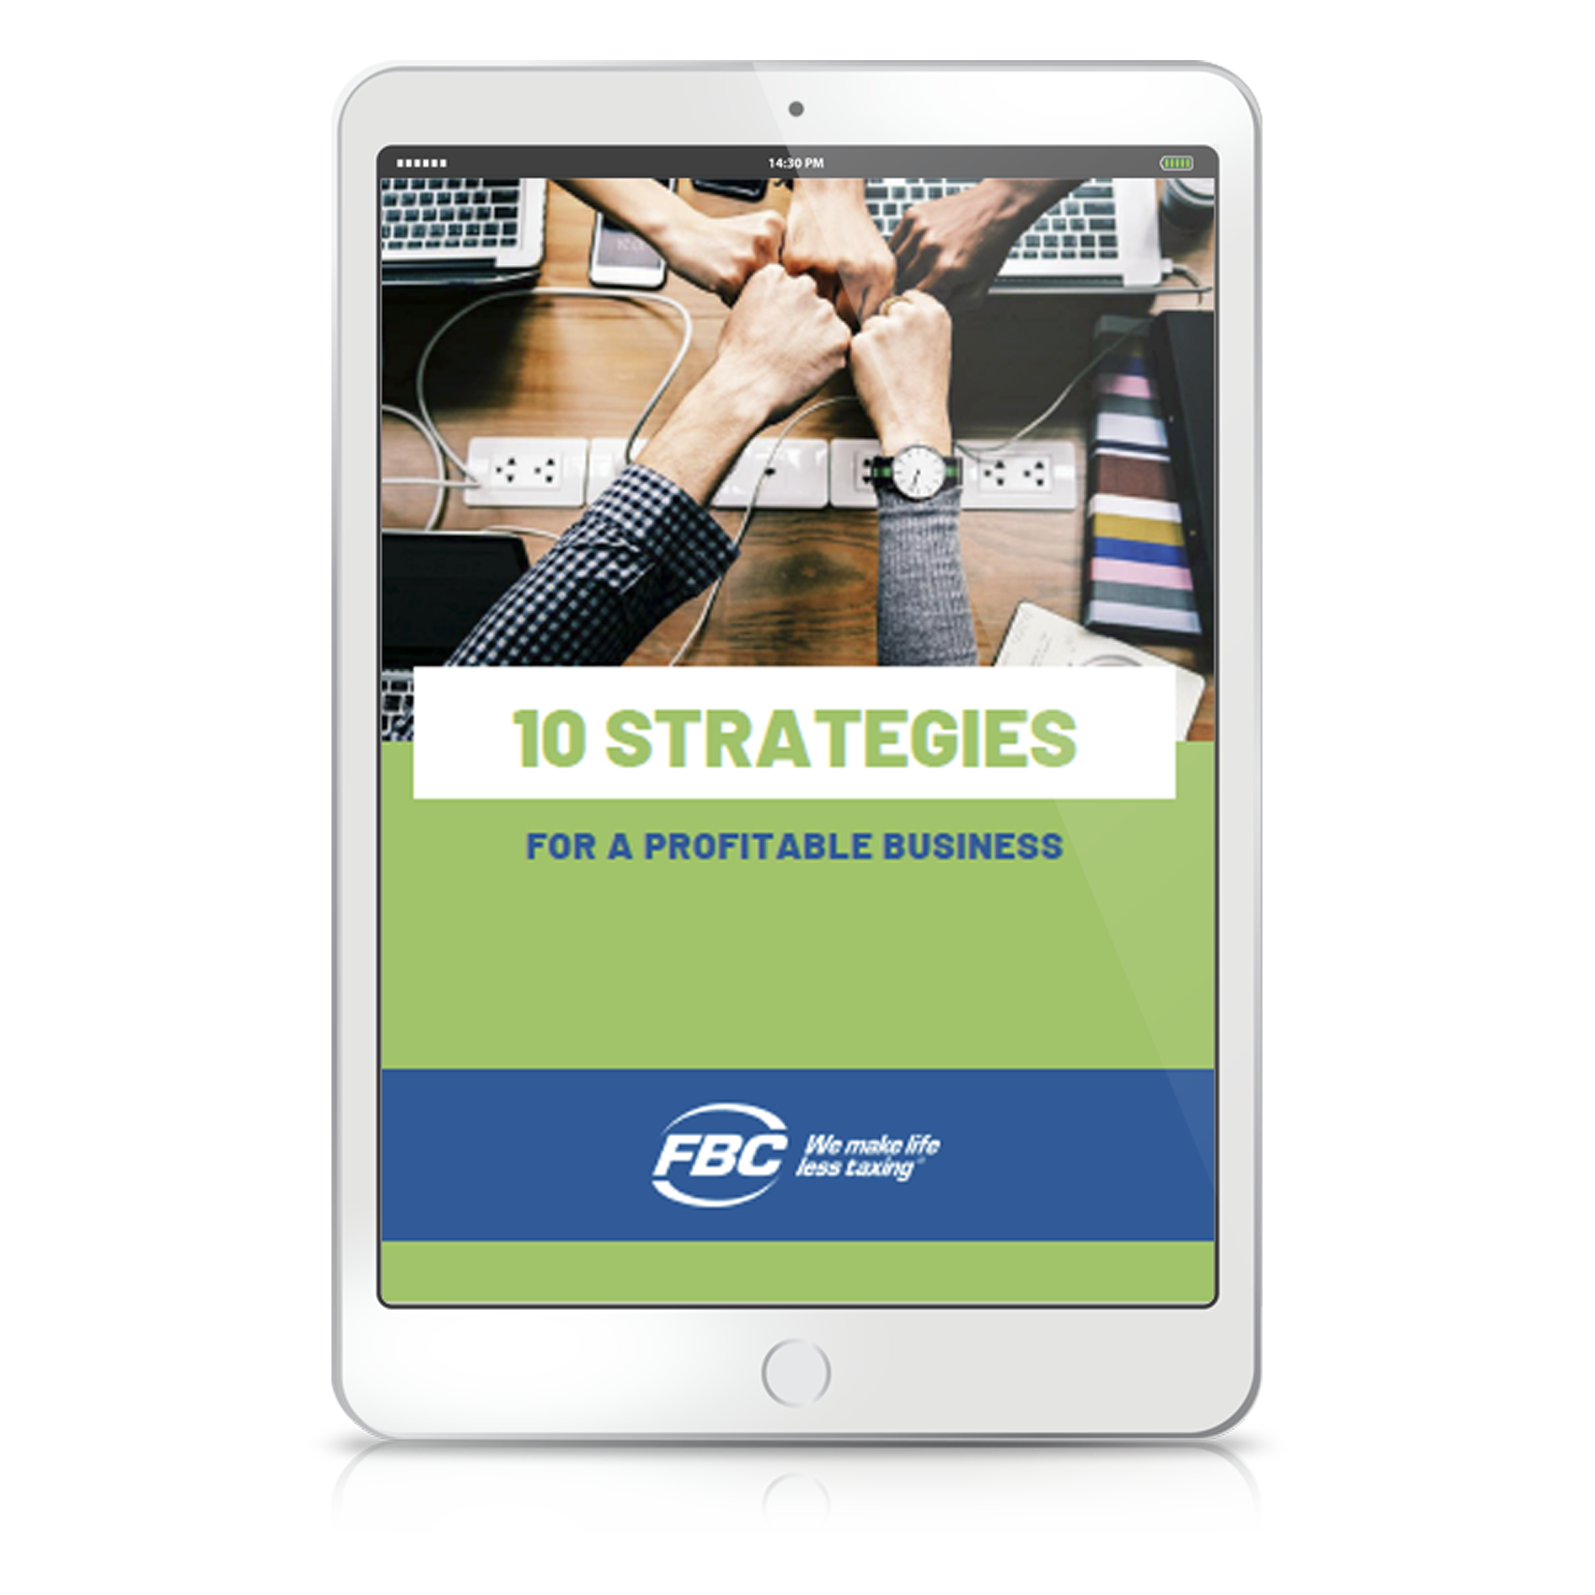 10 Strategies for a Profitable Business eBook